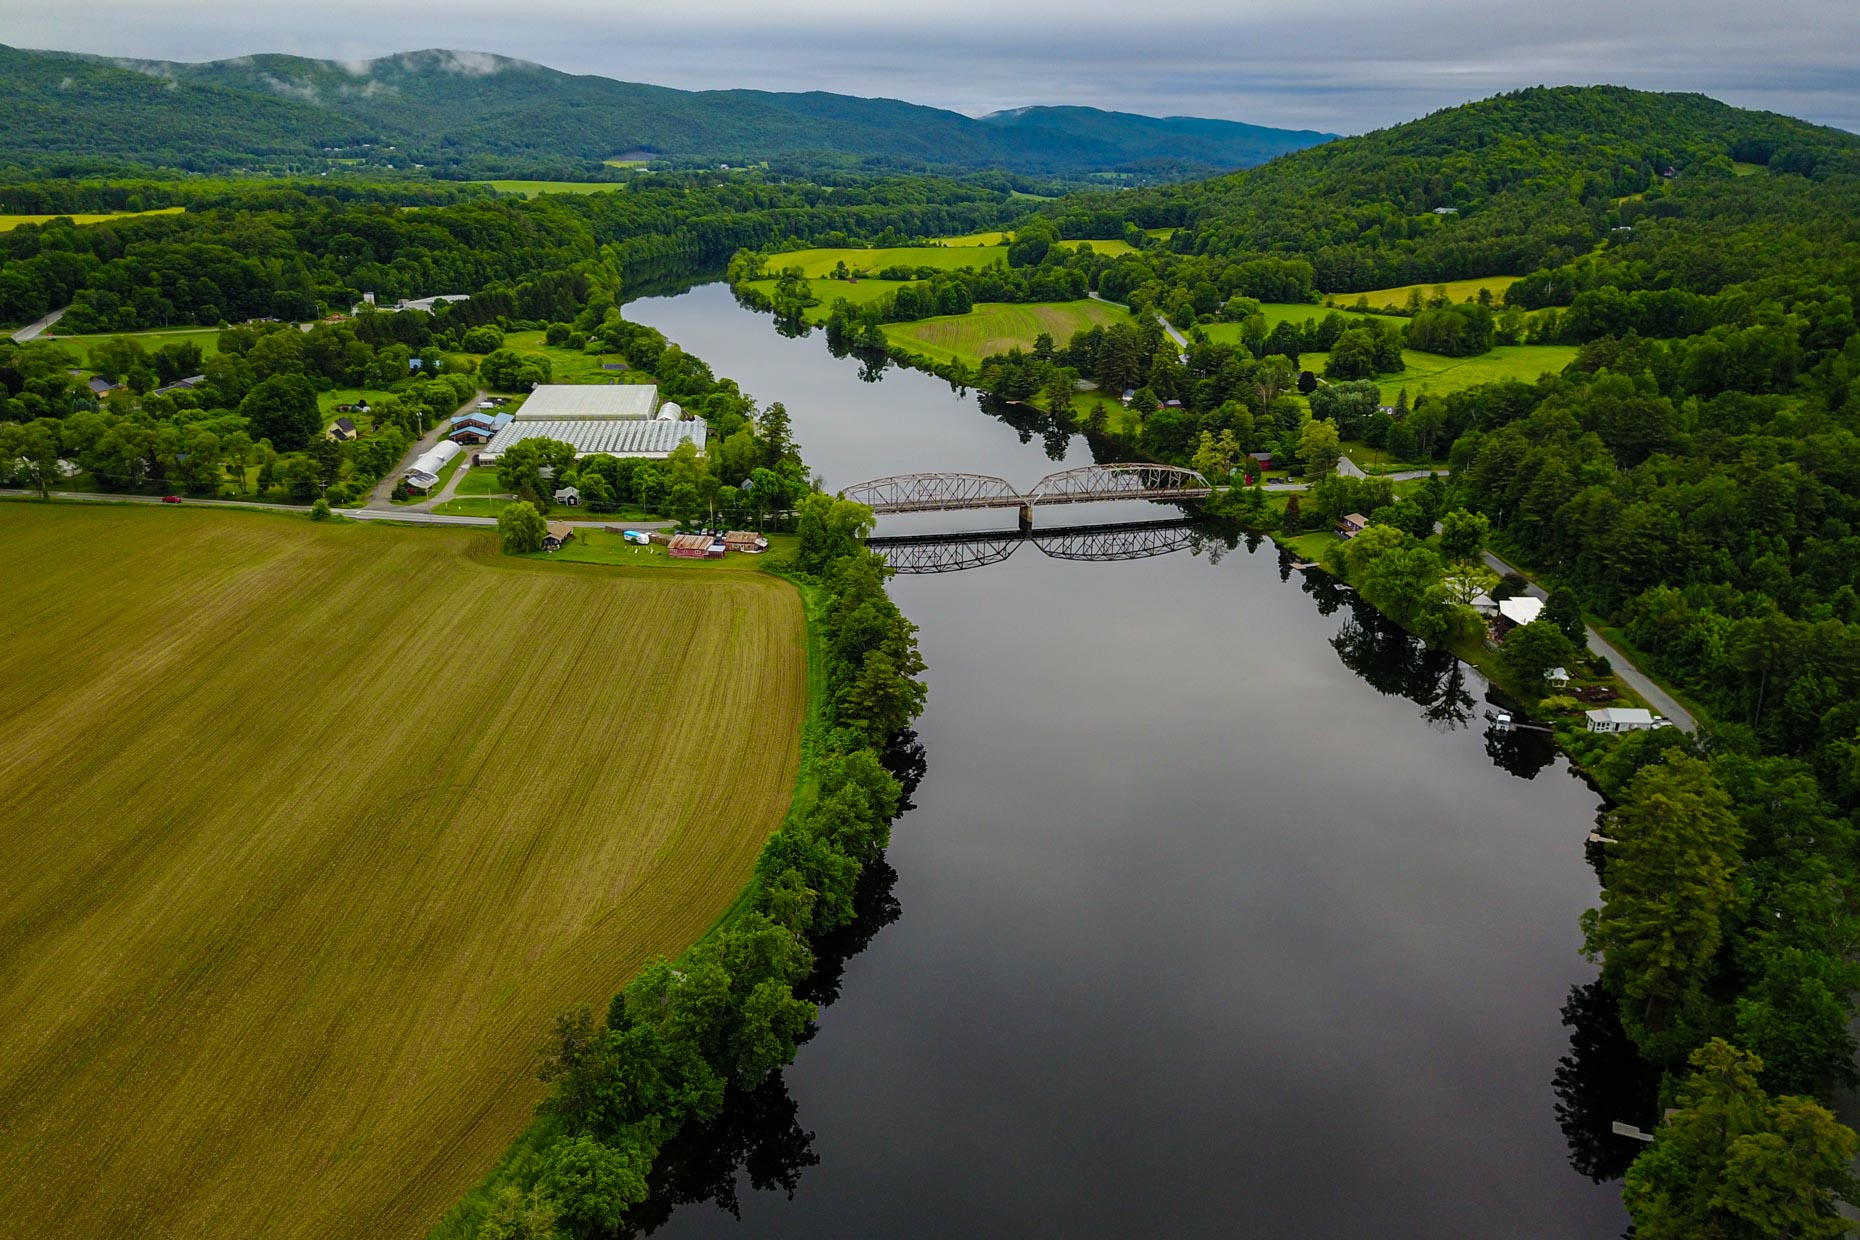 Aerial photograph of the Connecticut River and farms.